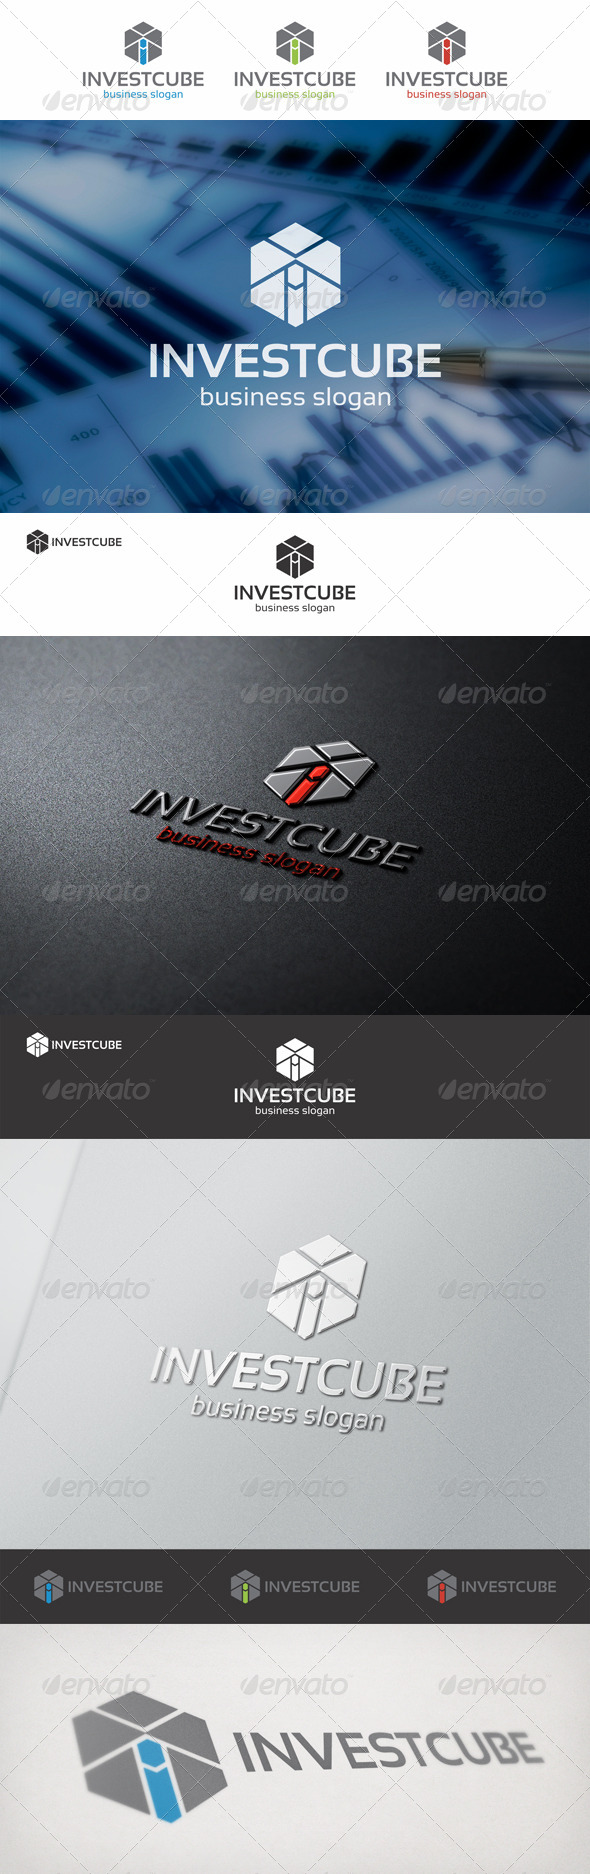 Invest Cube Logo Template - Vector Abstract